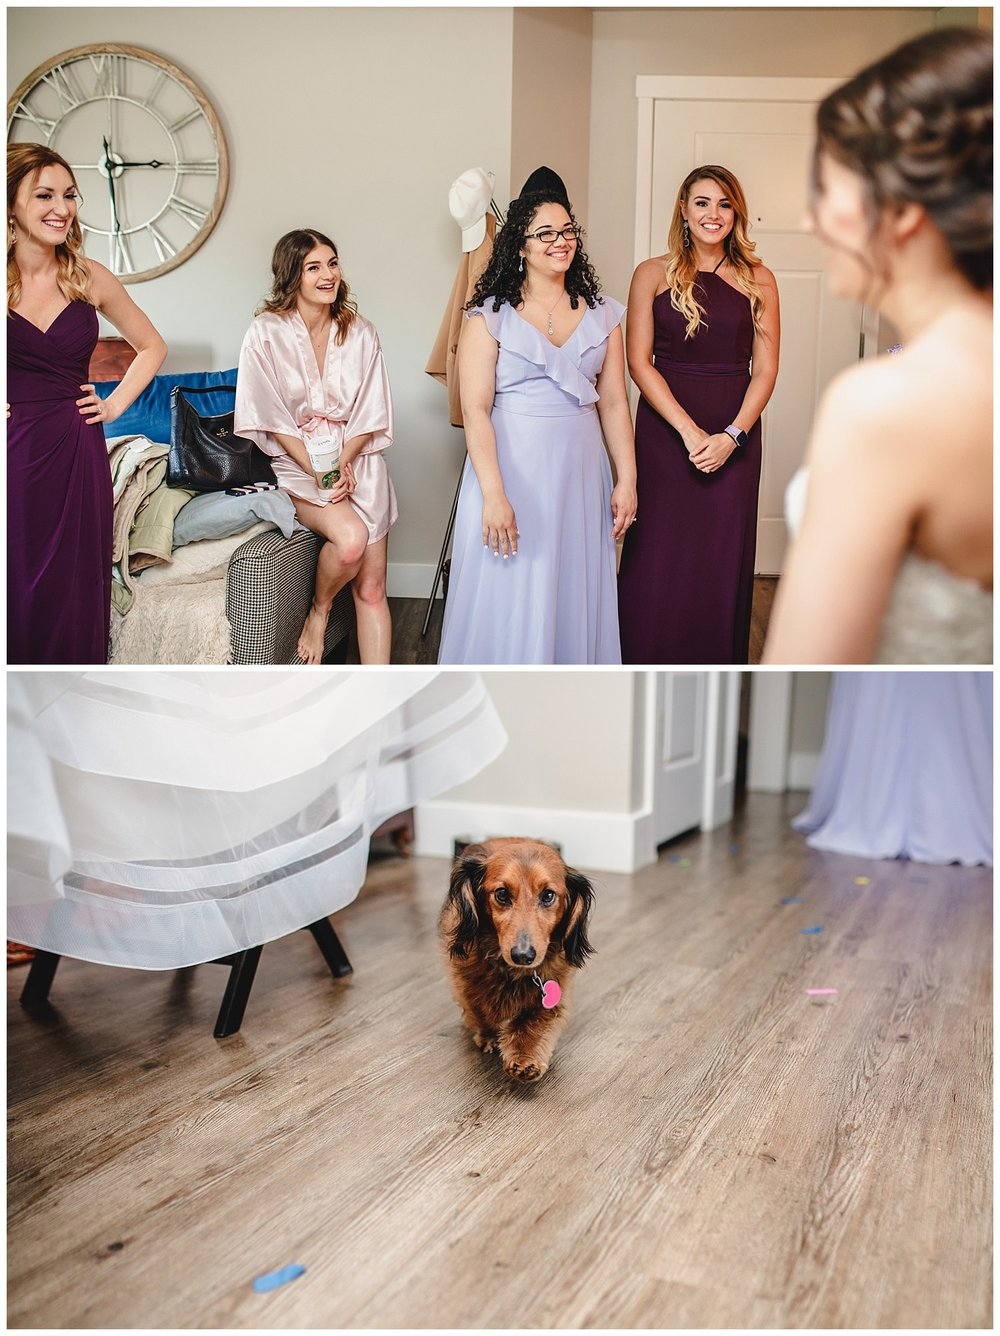 Tiffany_Greens_Golf_Club_Kansas_City_Wedding_Nikki_David_Spring_Wedding_Kelsey_Diane_Photography_0011.jpg